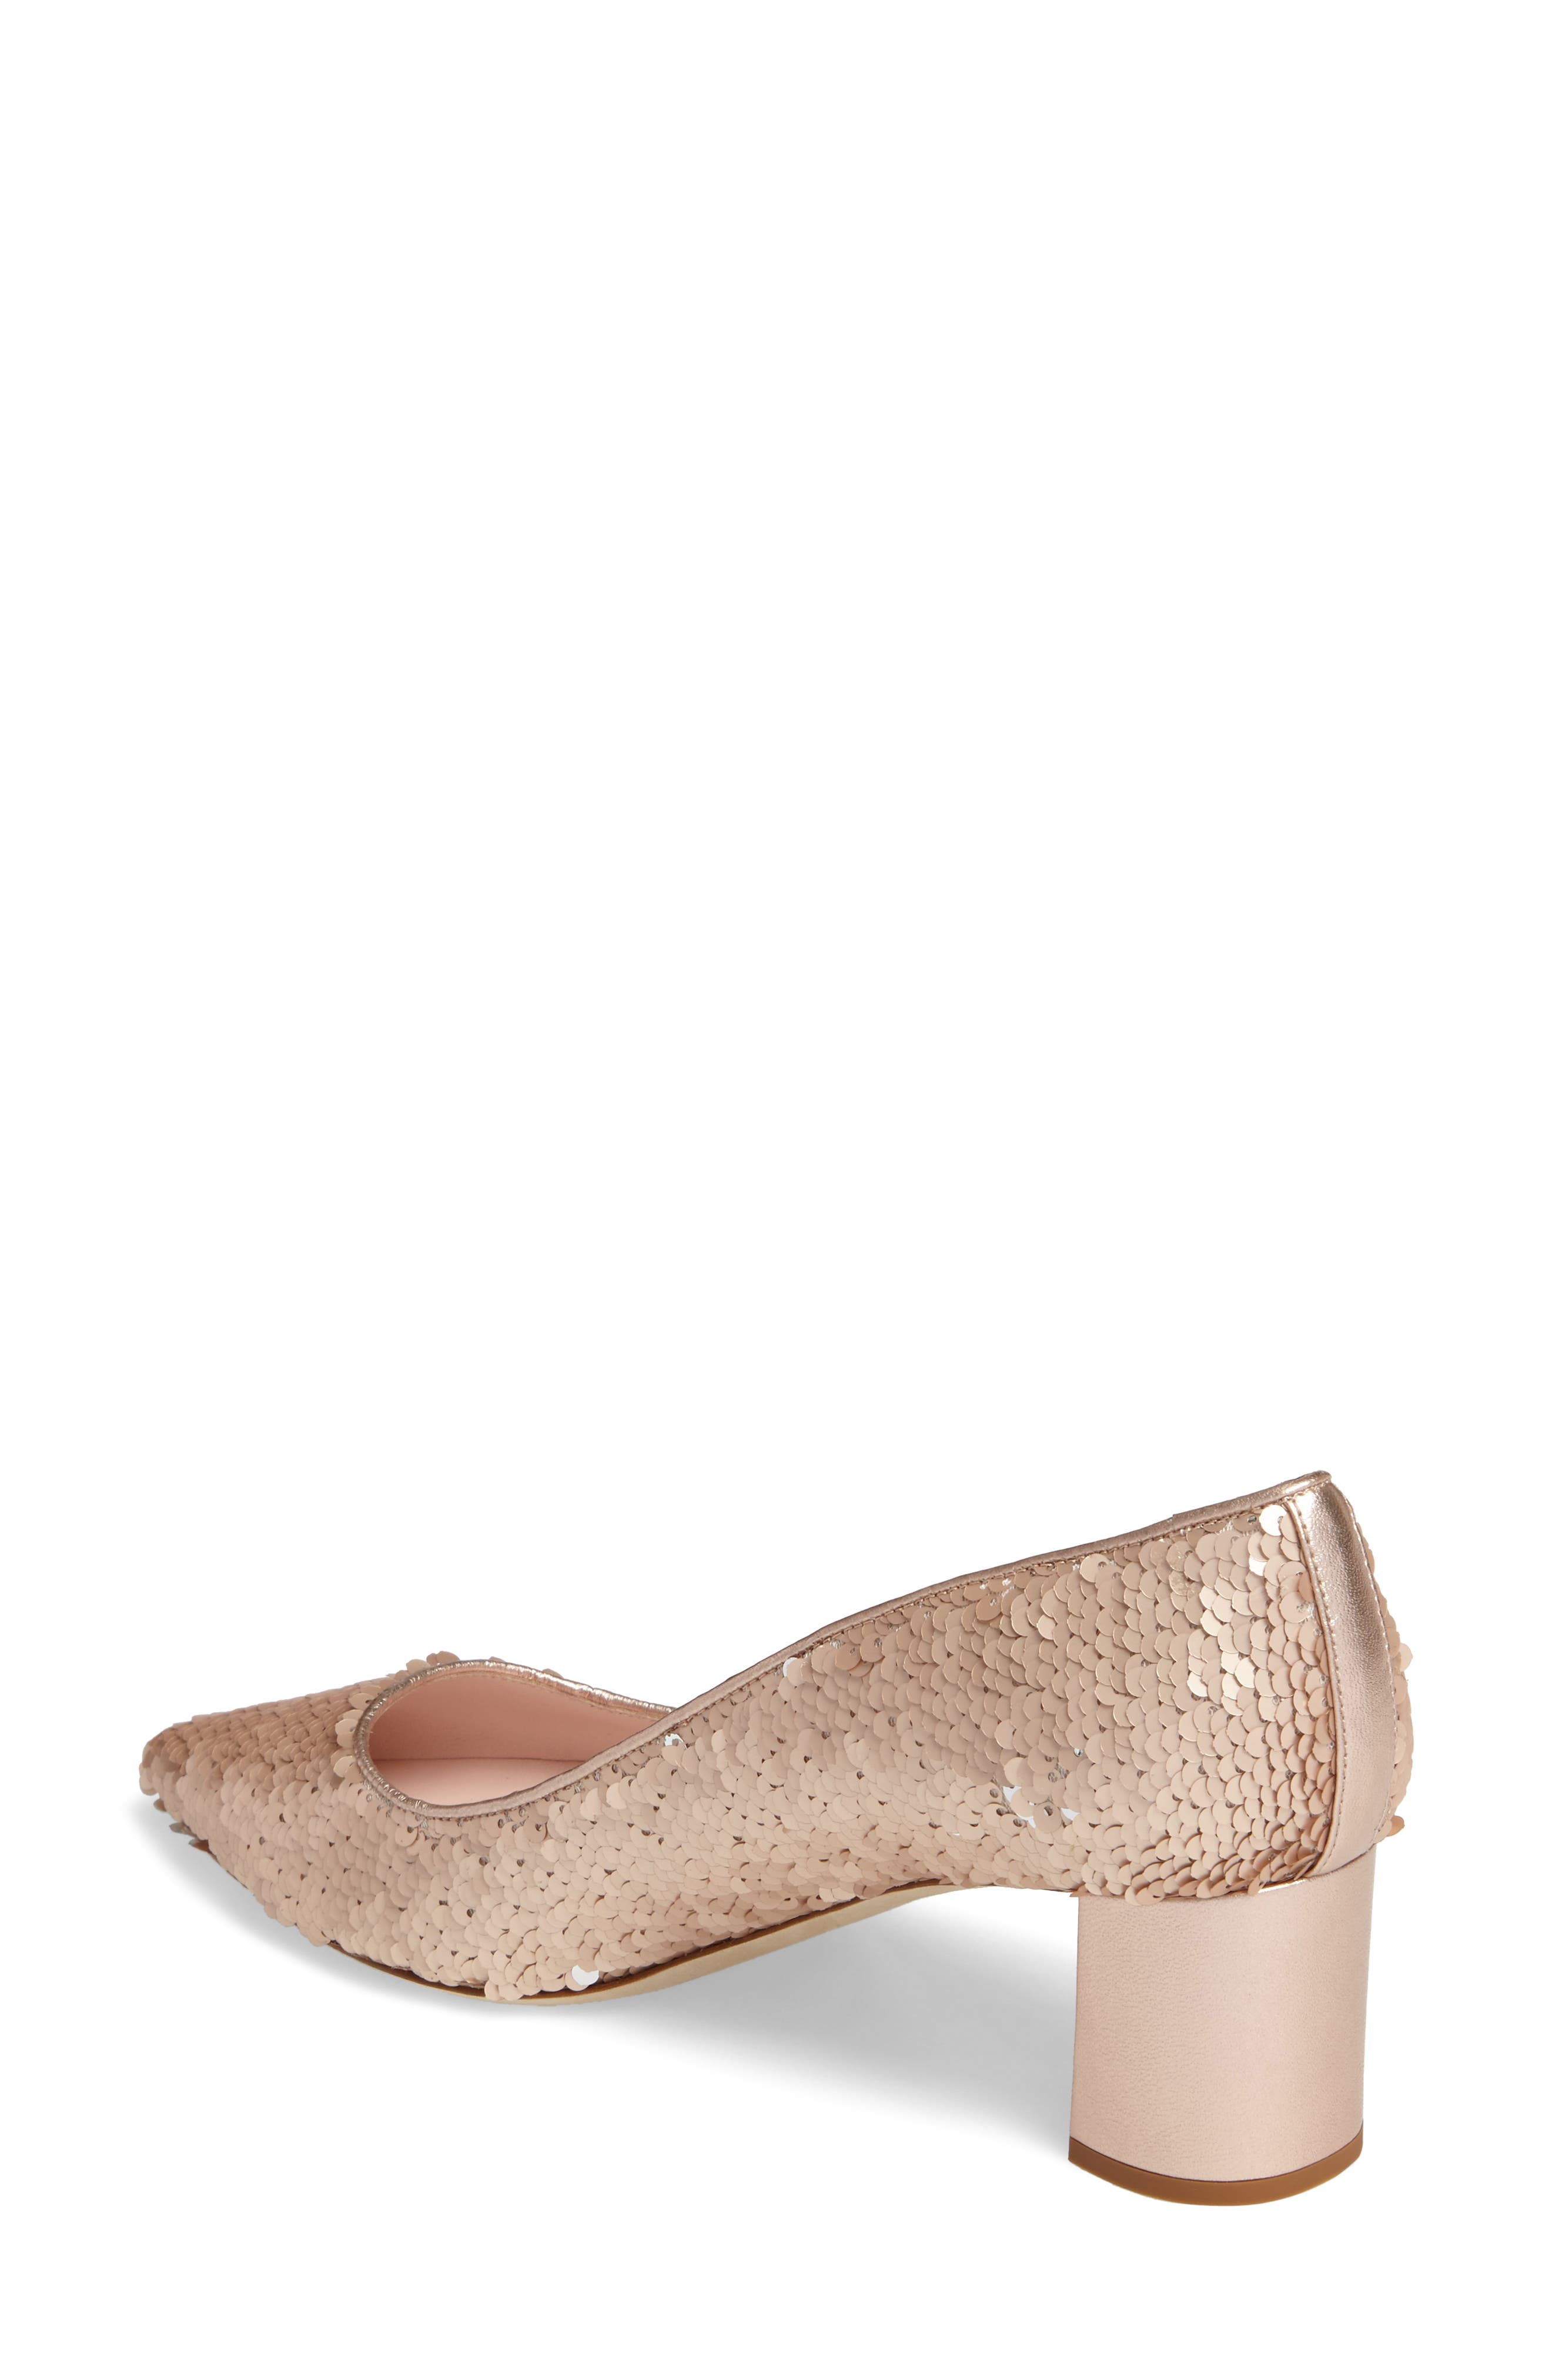 mauna sequin pump,                             Alternate thumbnail 6, color,